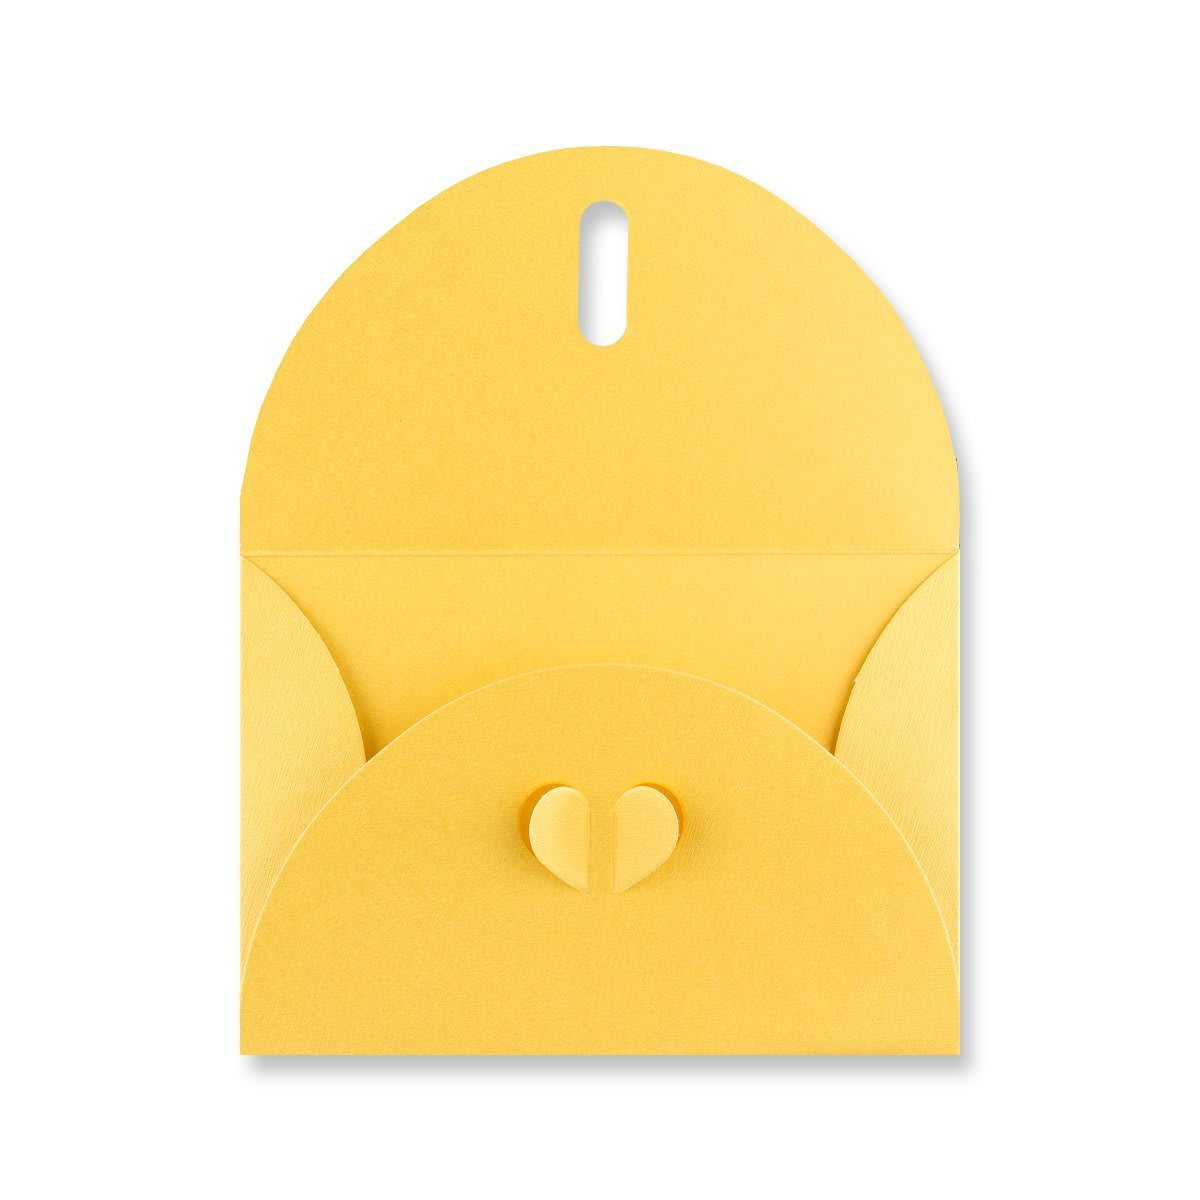 C6 GOLDEN YELLOW BUTTERFLY ENVELOPES